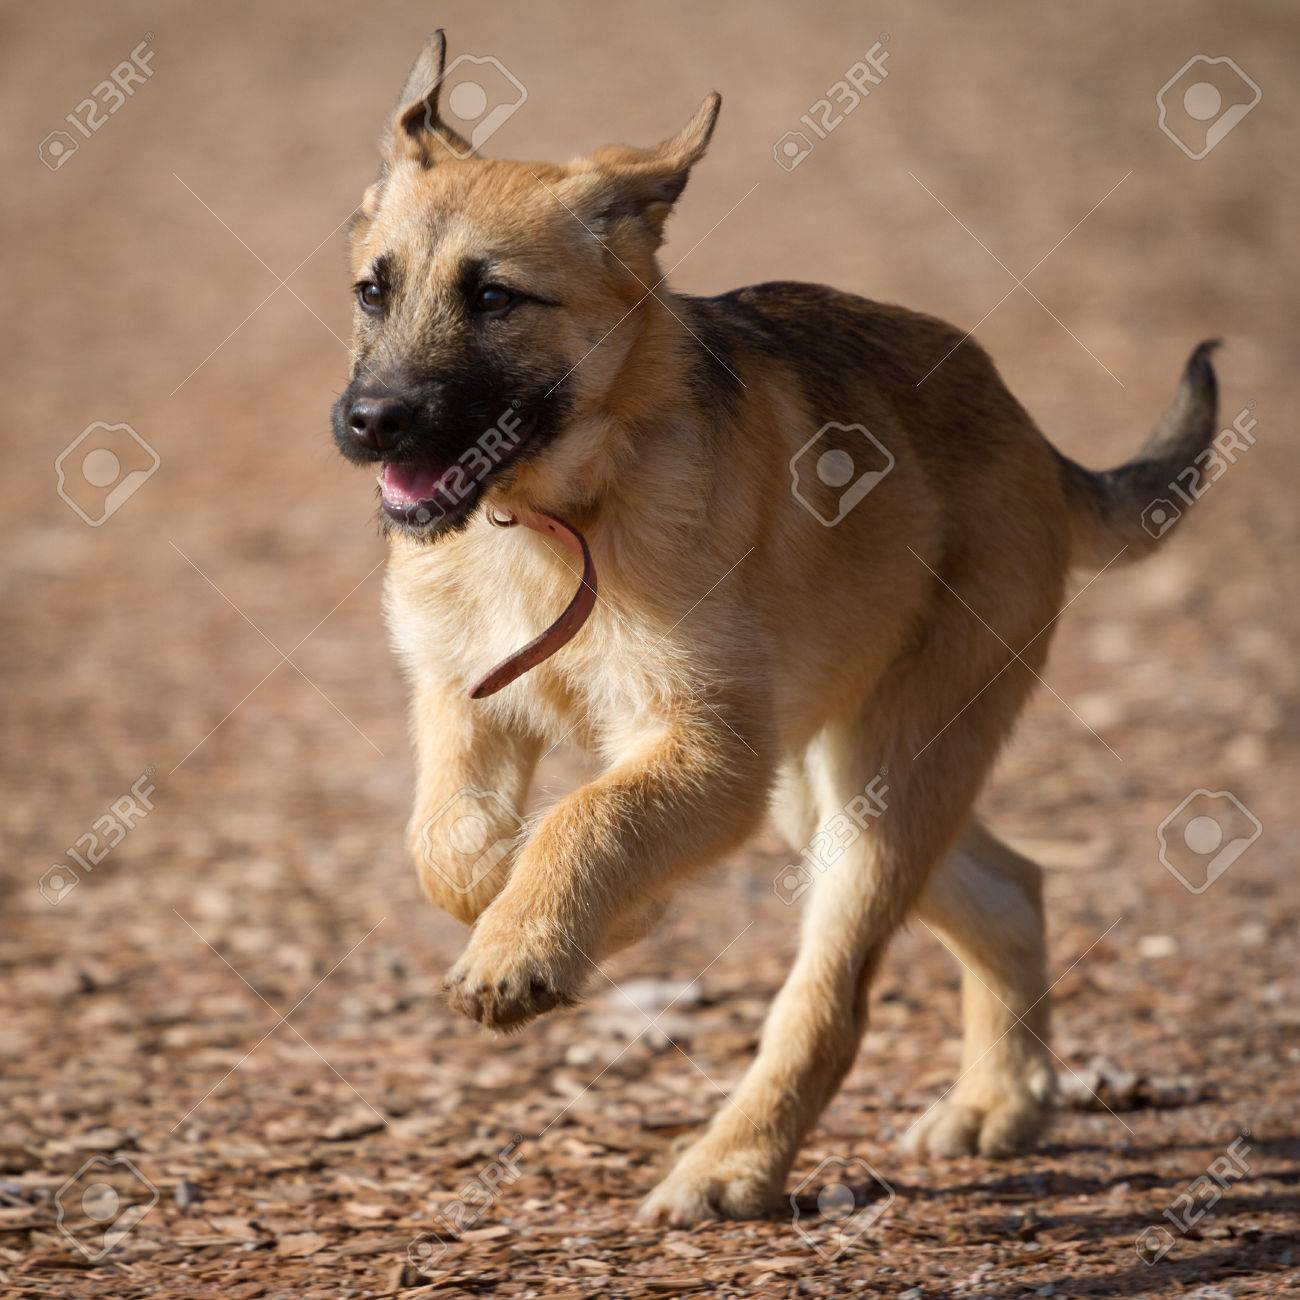 A Young German Shepherd Puppy Run Full Of Life Over A Brown Background Stock Photo Picture And Royalty Free Image Image 26748215